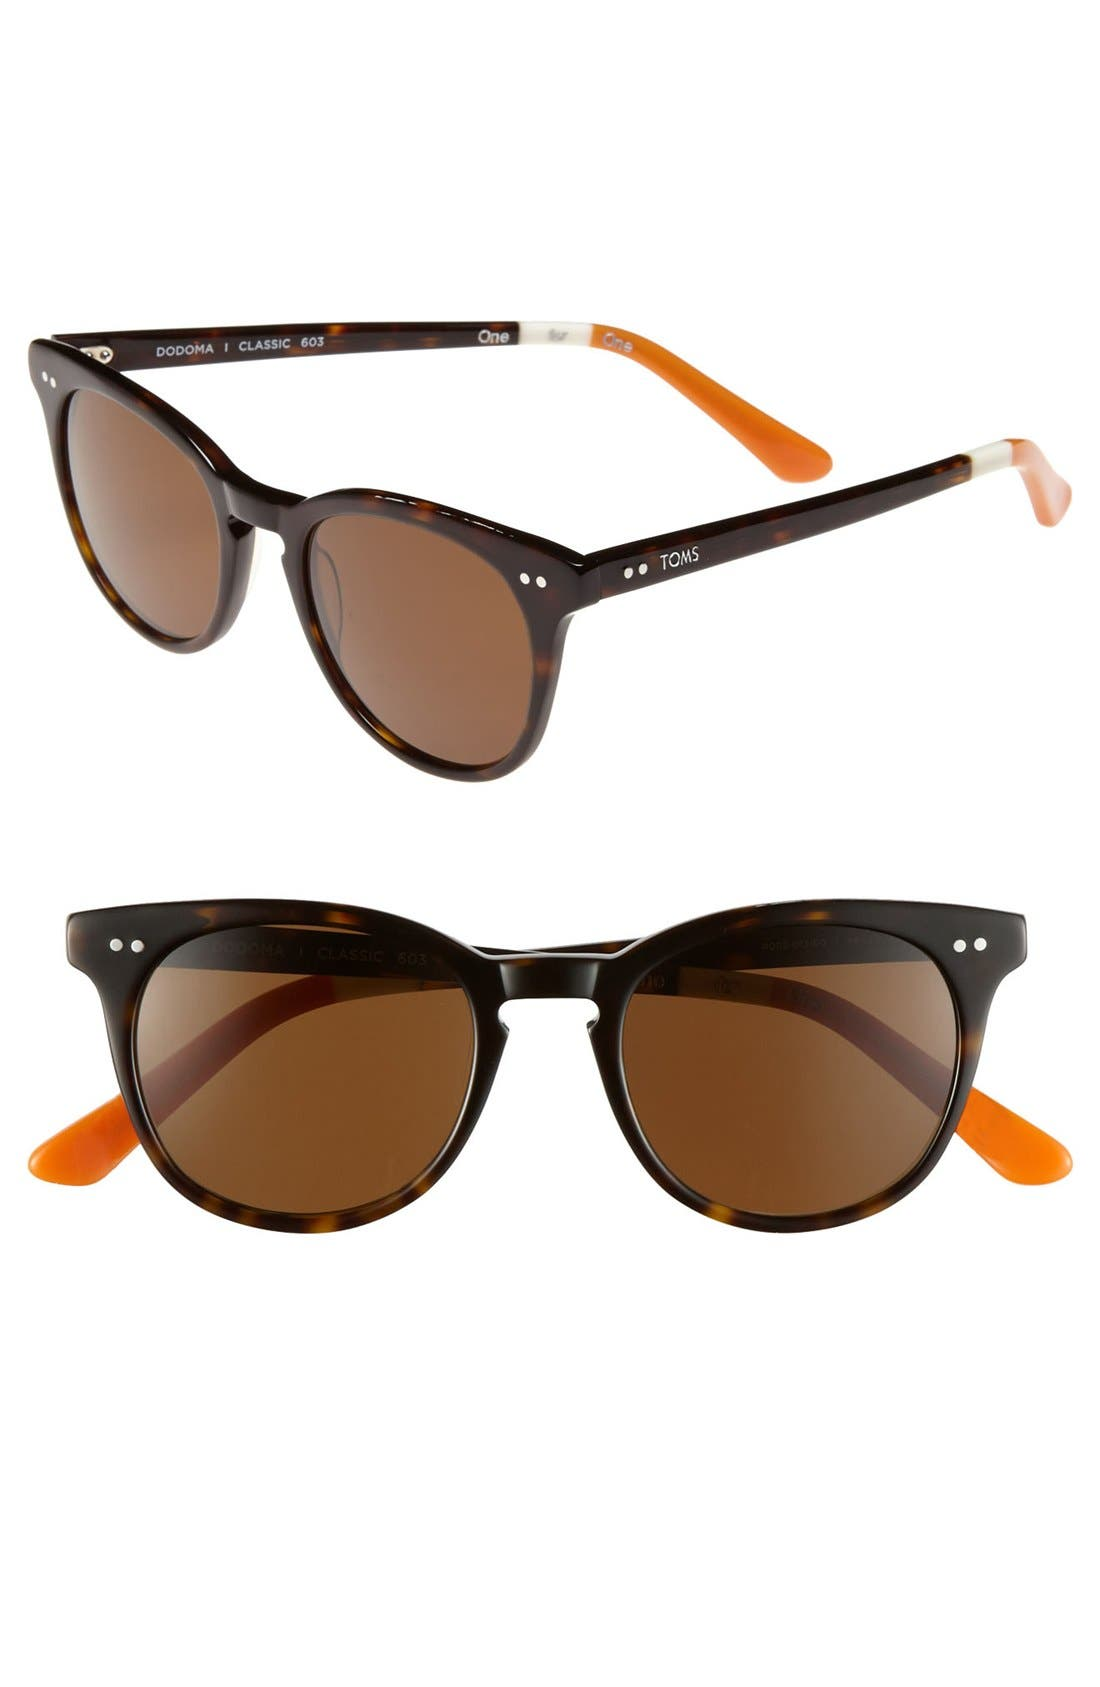 Alternate Image 1 Selected - TOMS 'Dodoma - Classic 603' Polarized 48mm Sunglasses